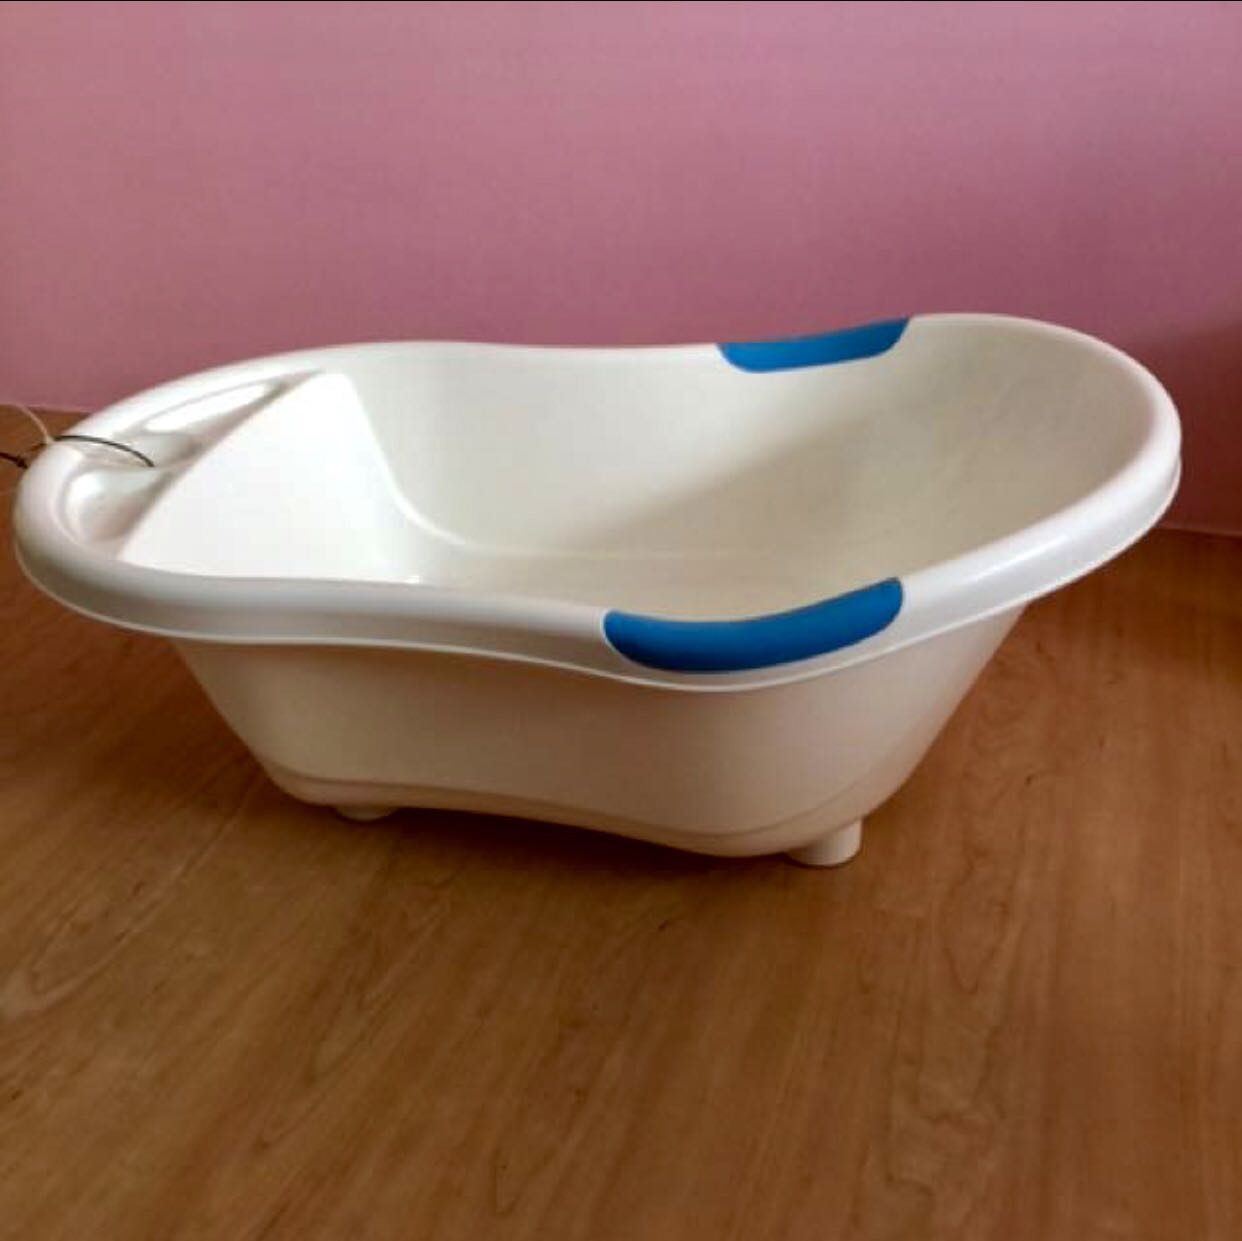 GRACO baby bath tub (Large), Babies & Kids on Carousell